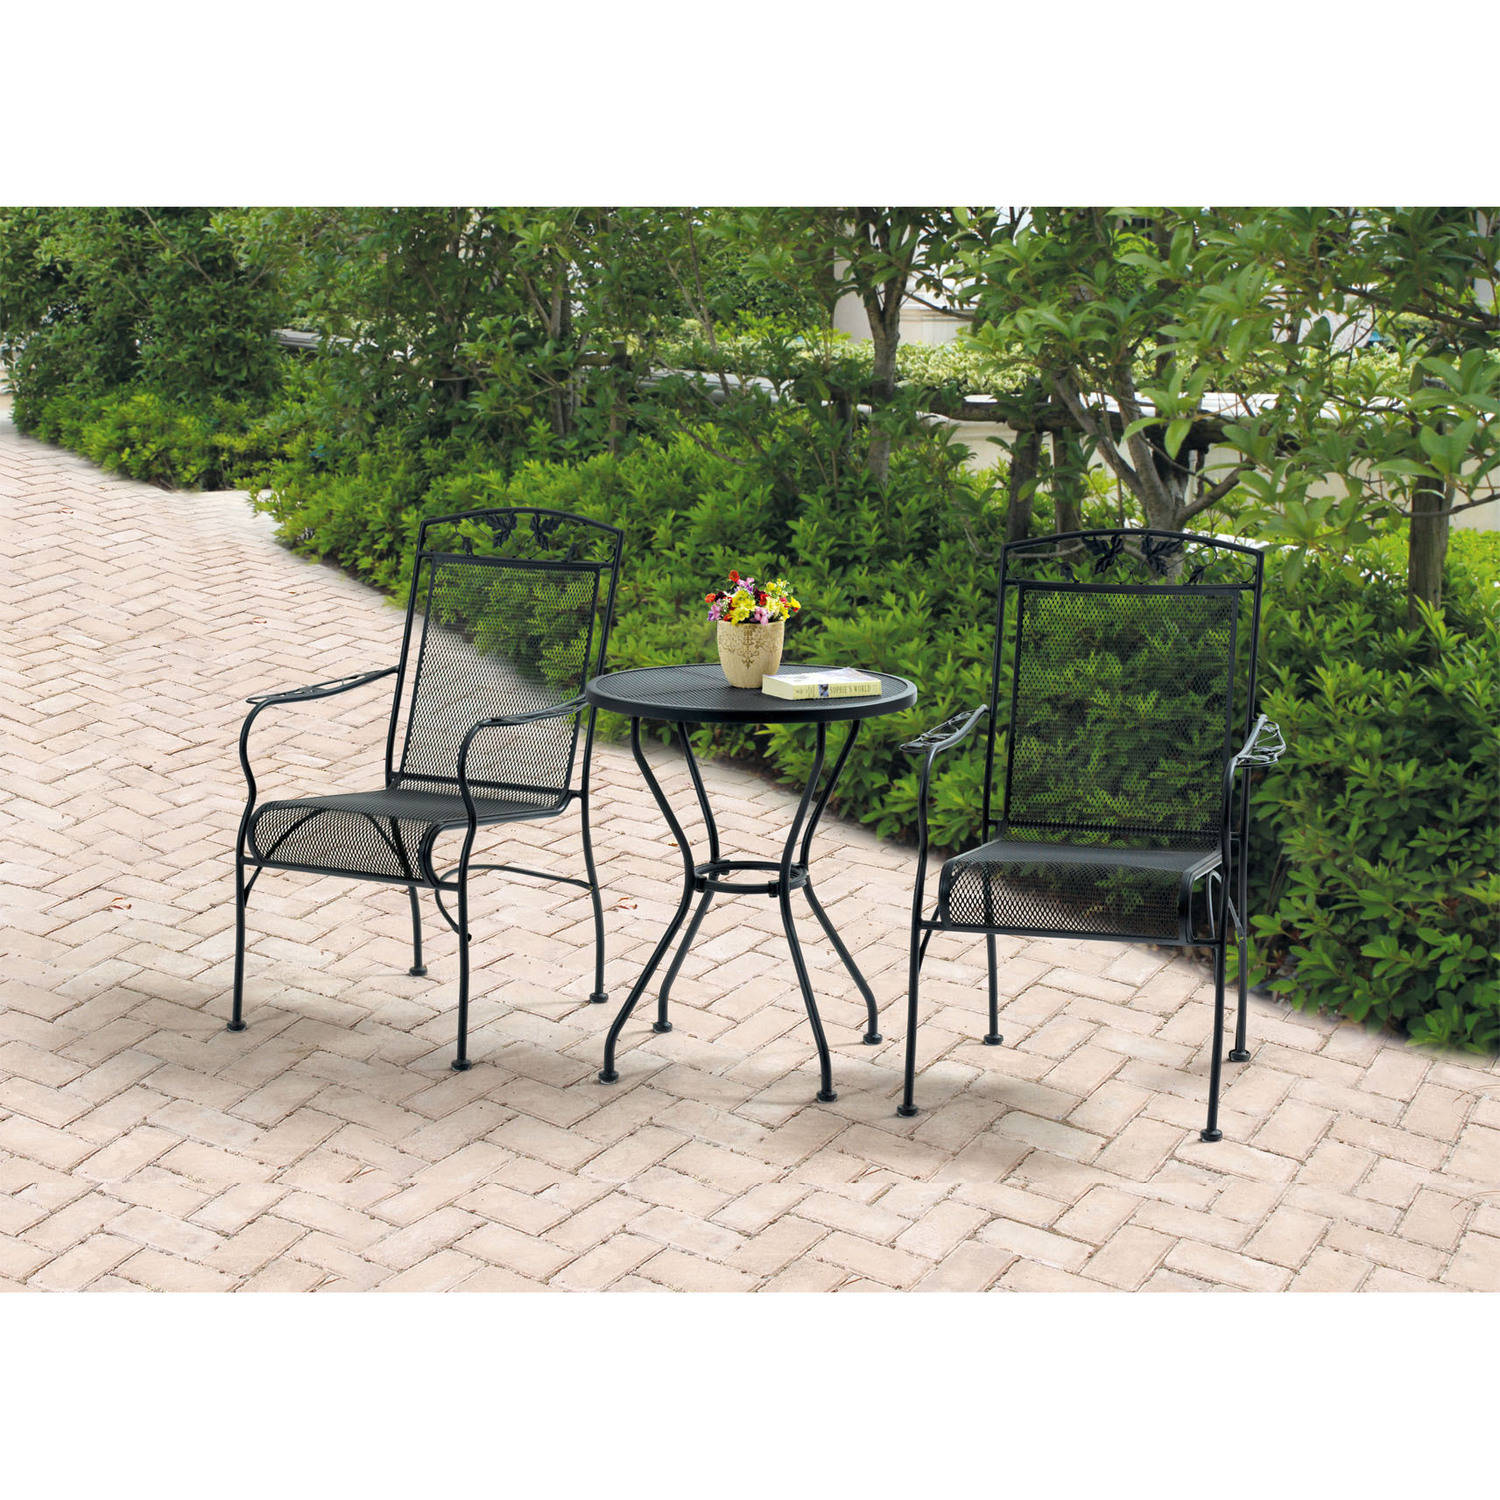 set a authorized patio browse winston sets dining outdoor tables factory chairs furniture dealer locate sale